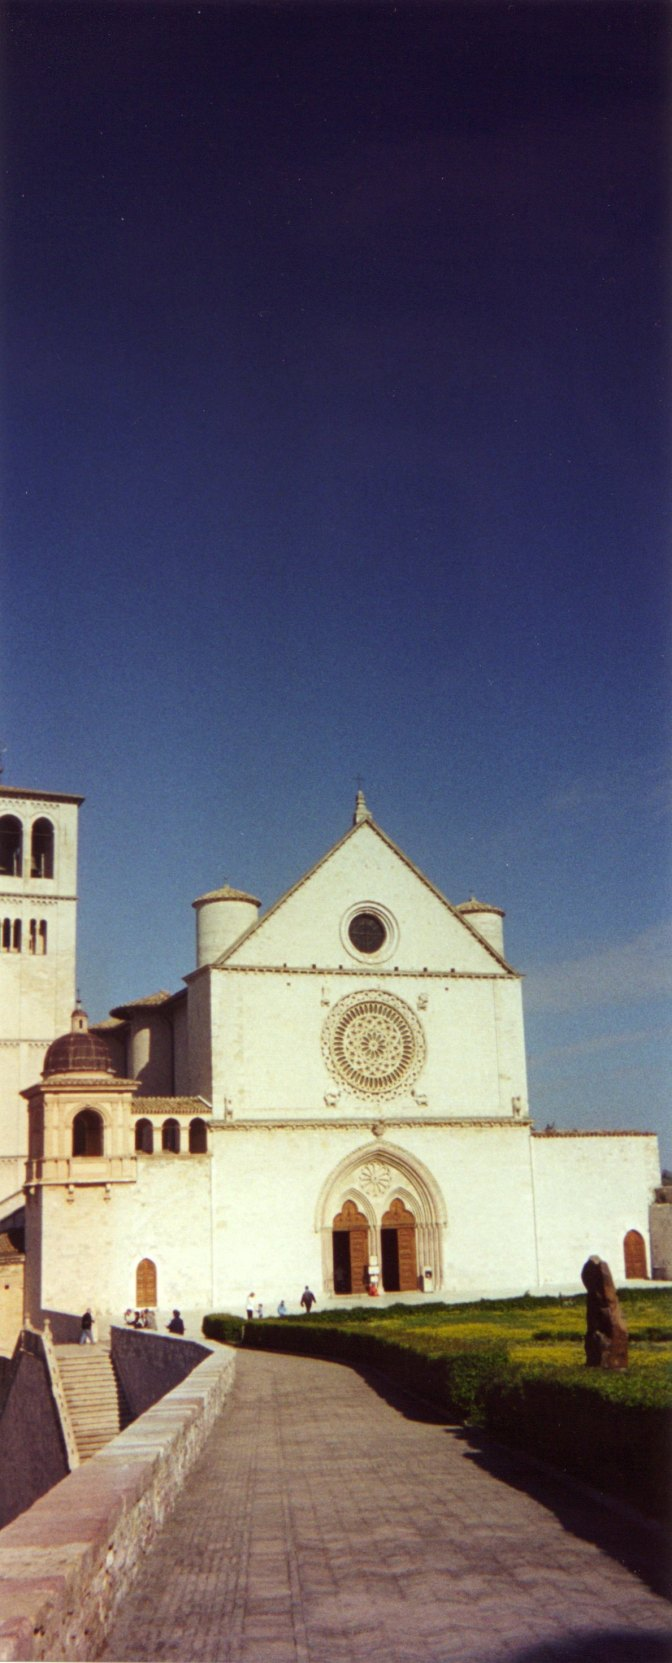 The Basilica in Assisi